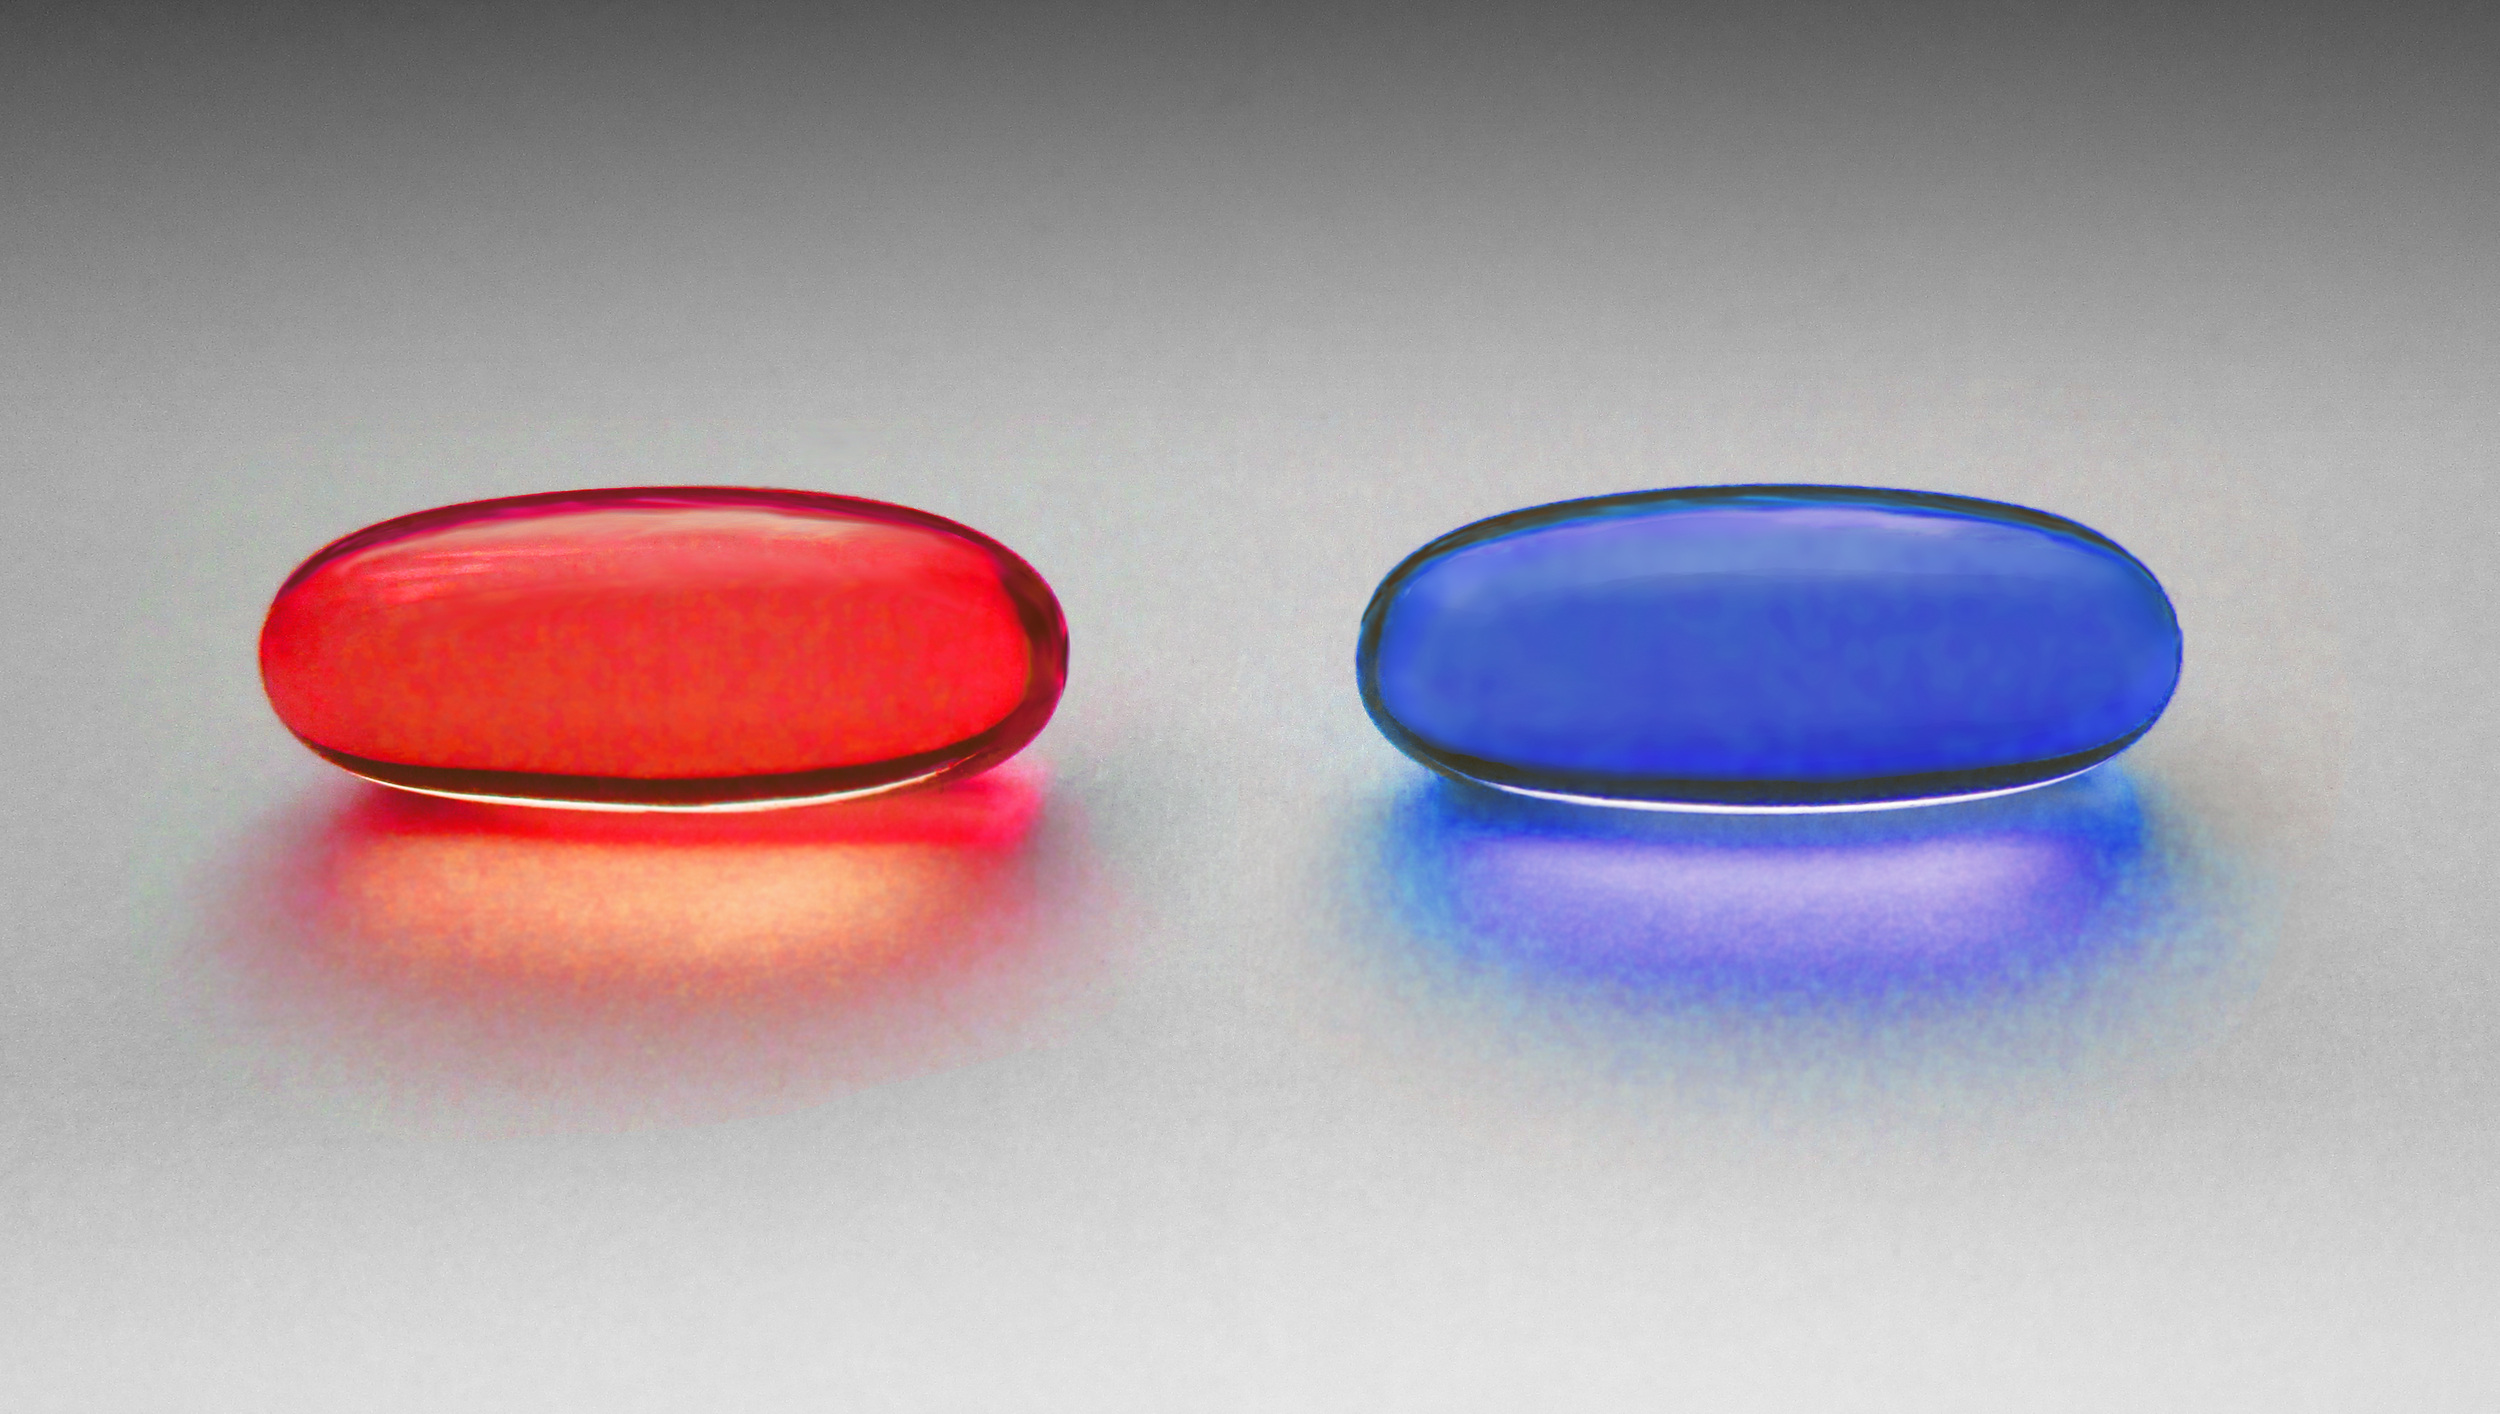 Image inspired from the film Matrix , choose the red pill or the blue pill.